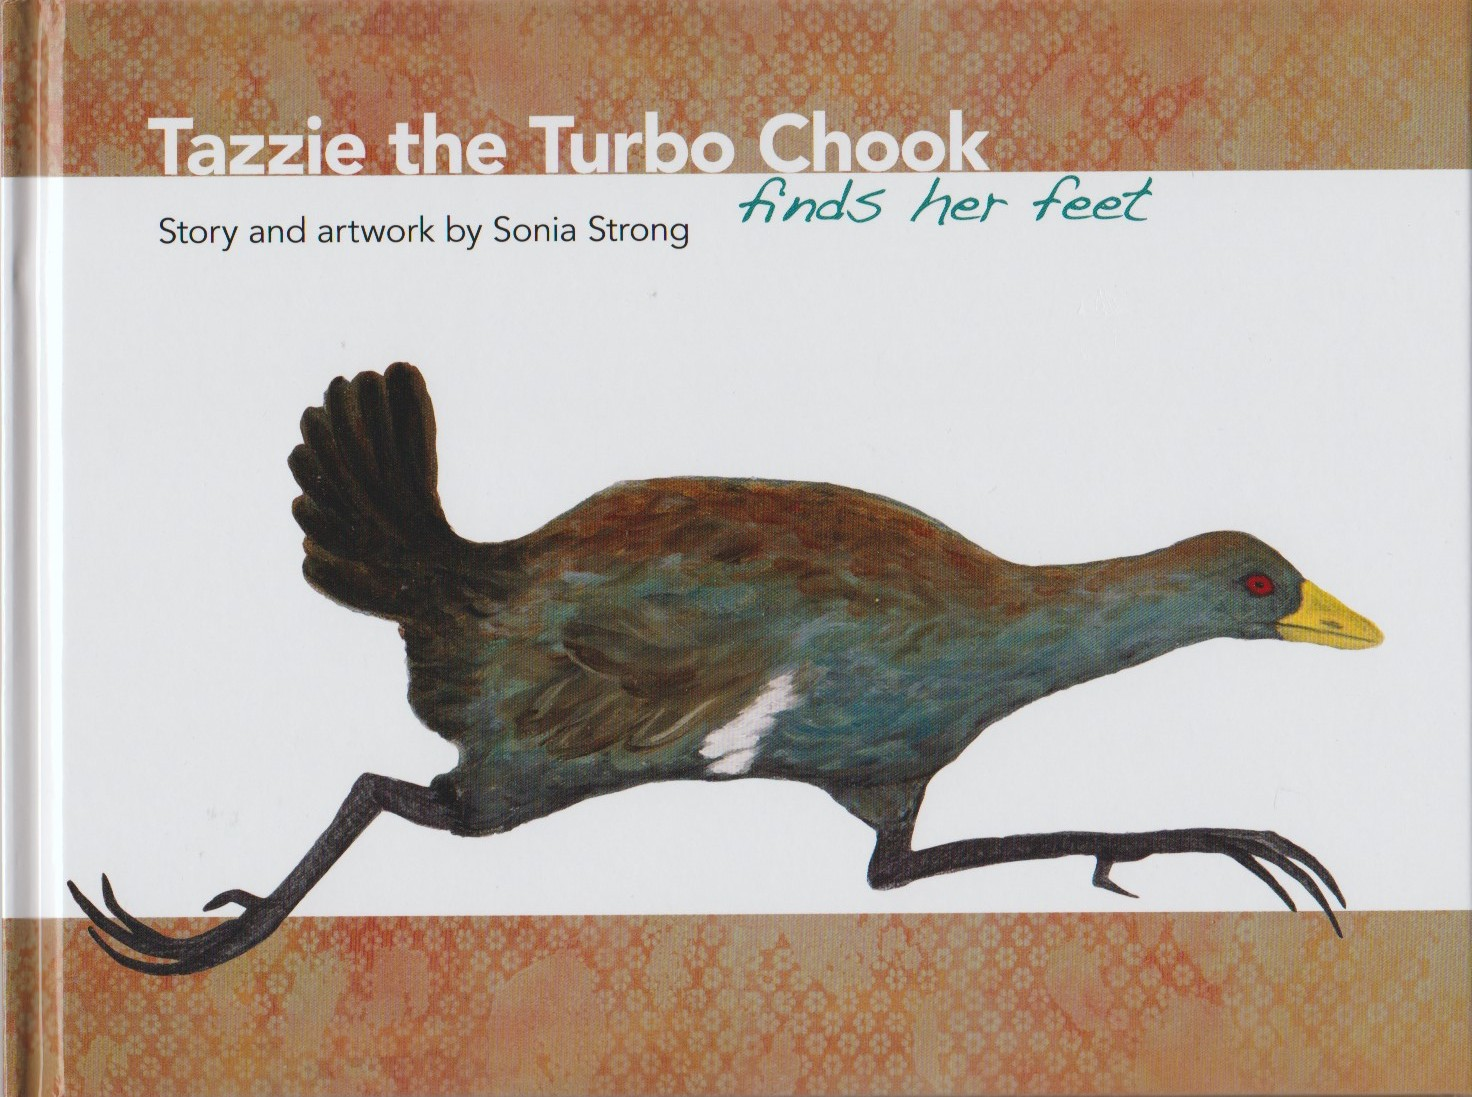 Tazzie the Turbo Chook finds her feet, a children's book